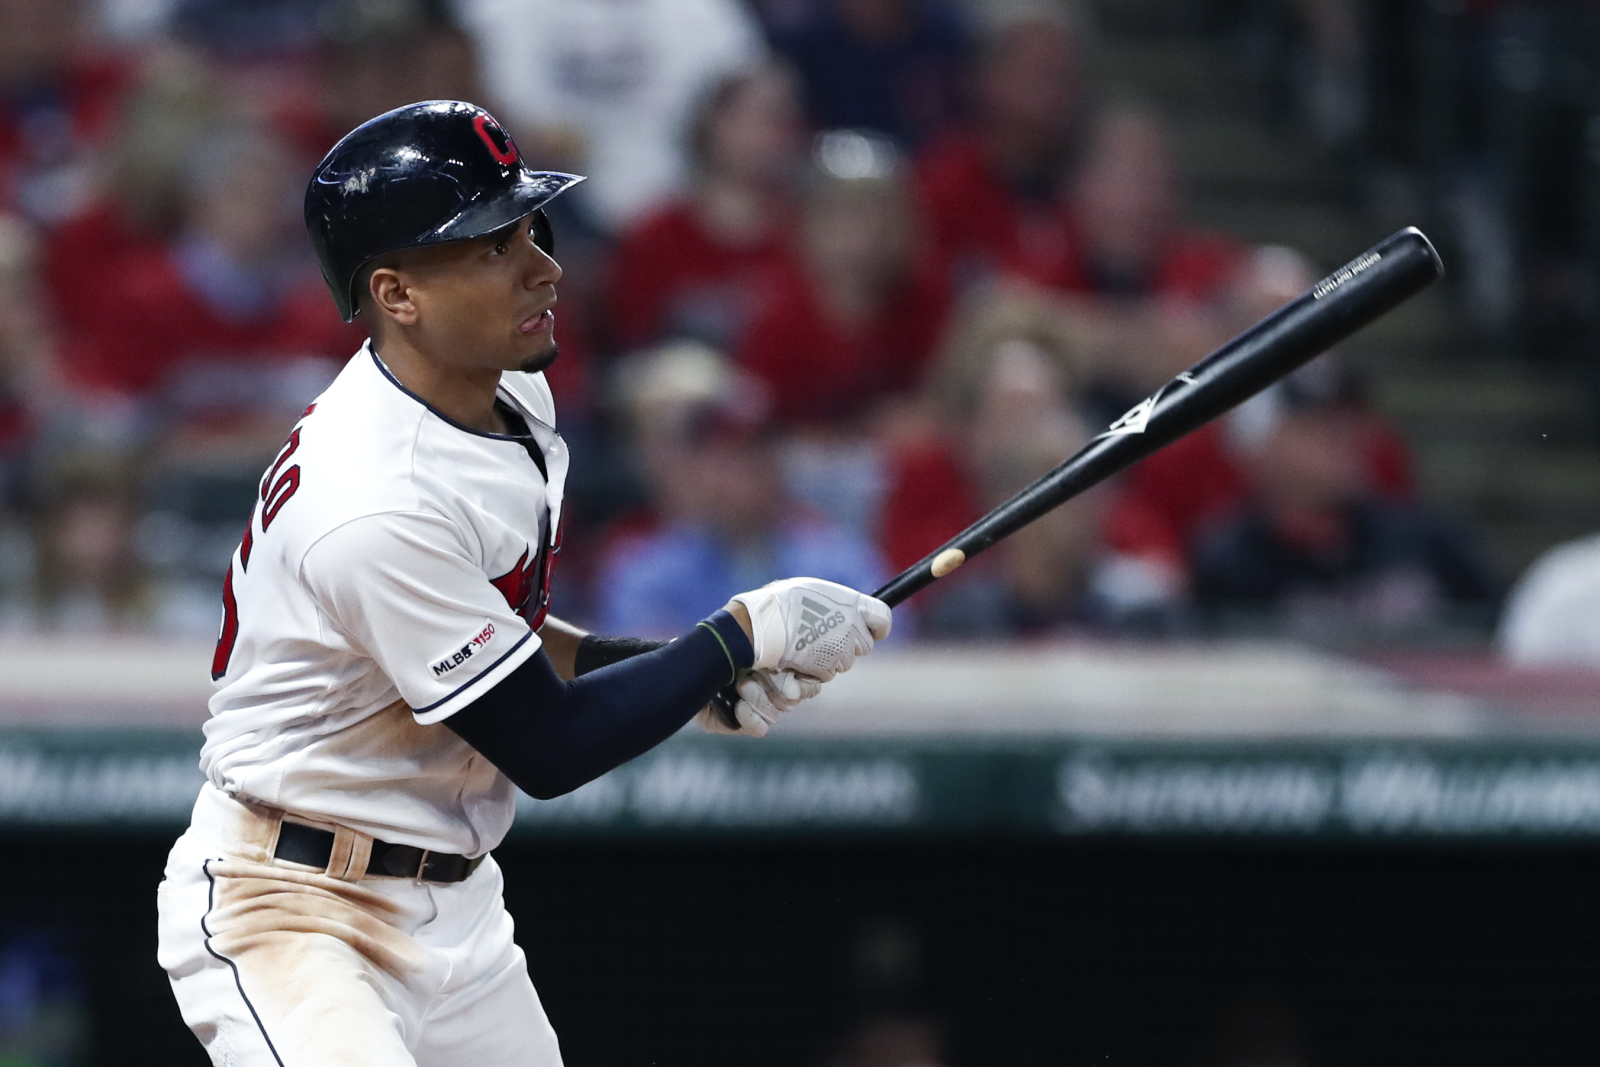 Cleveland Indians: Where should Oscar Mercado hit in 2020?